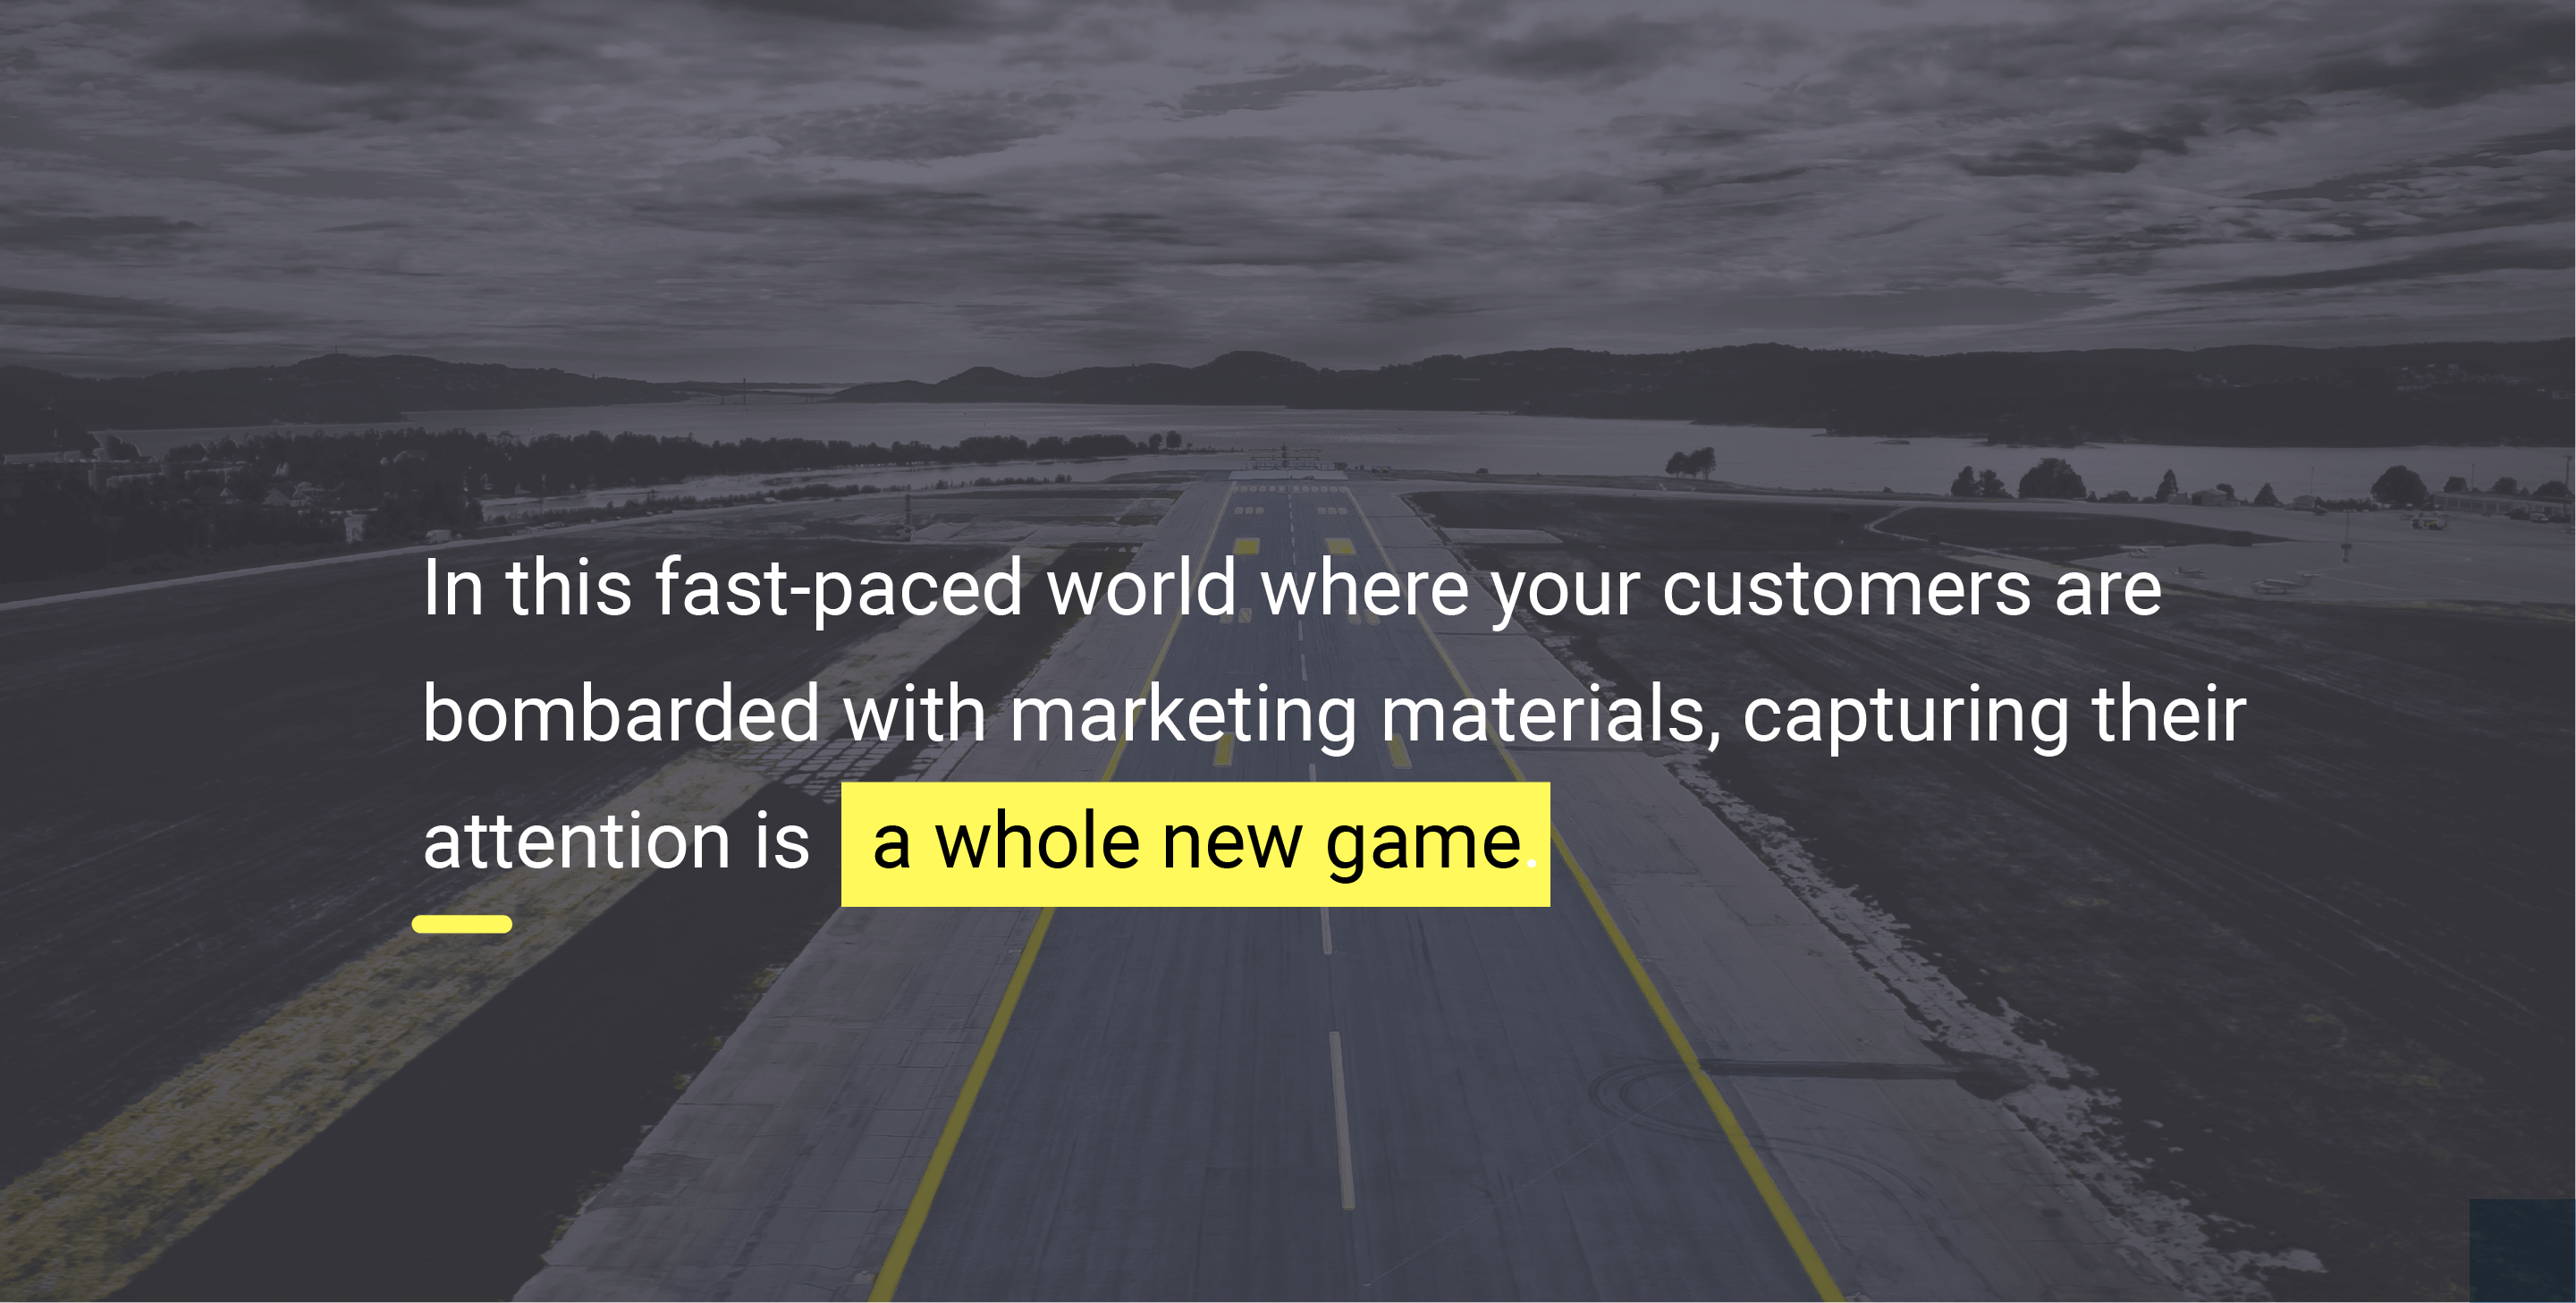 In this fast-paced world where your customers are bombarded with marketing materials, capturing their attention is a whole new game.